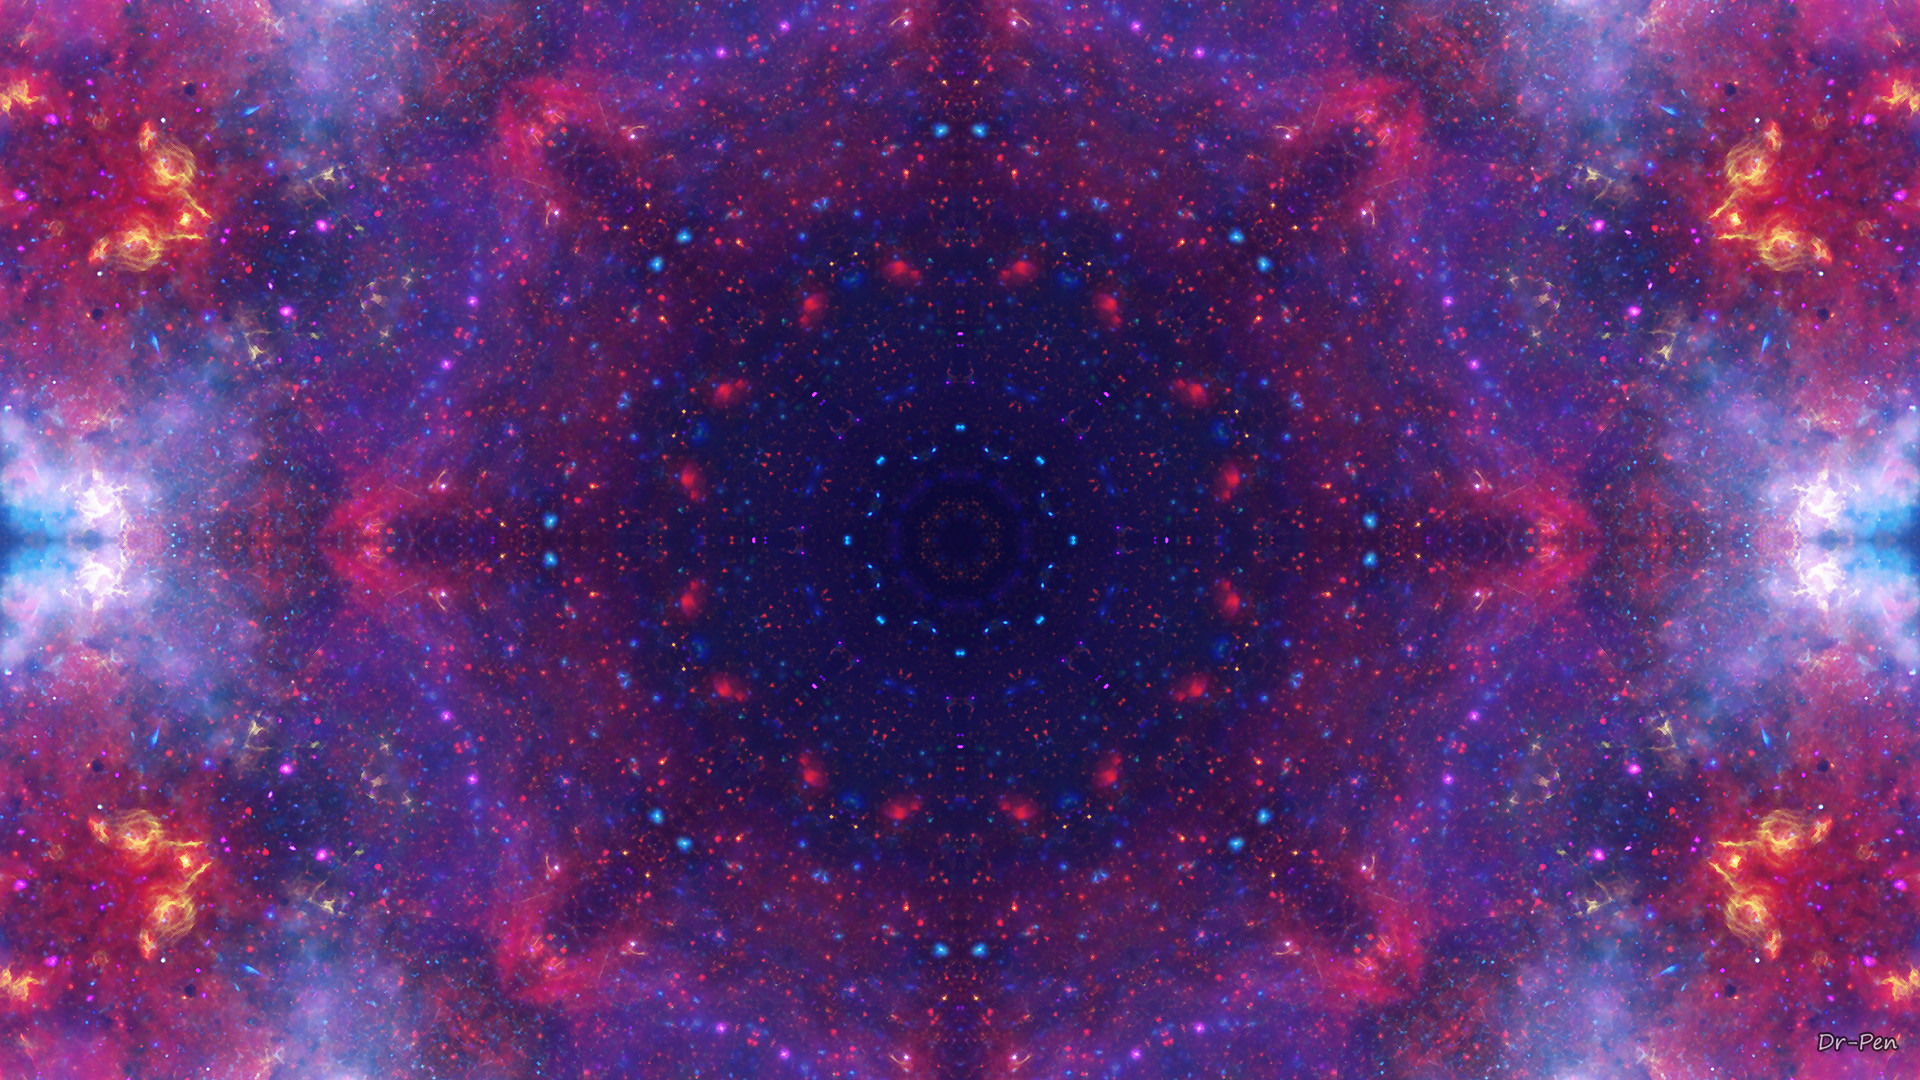 Abstract – Pattern Abstract Artistic Digital Mandala Manipulation Space  Purple Stars Wallpaper